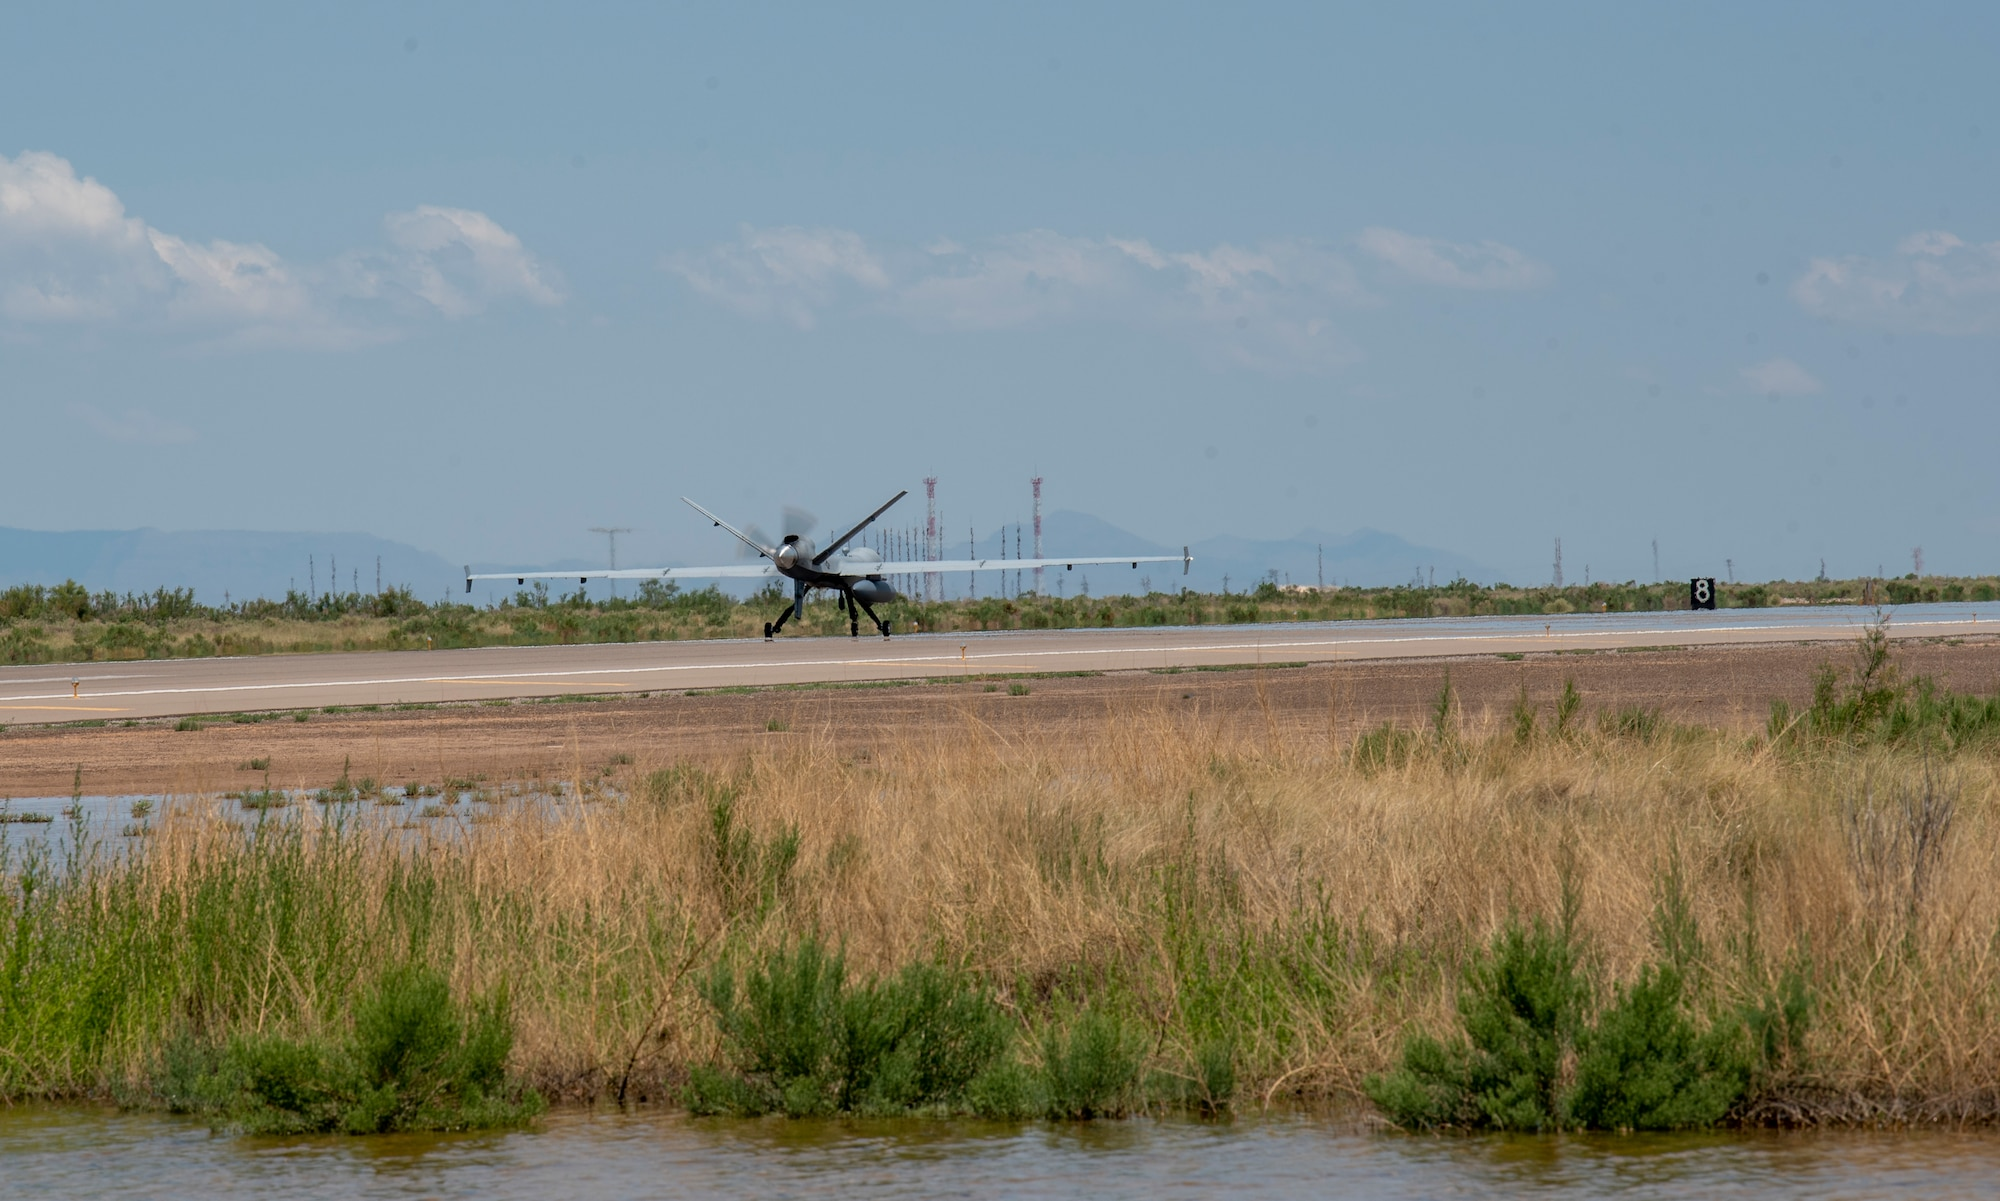 An MQ-9 Reaper from Creech Air Force Base, Nevada, prepares to take off from Holloman AFB.